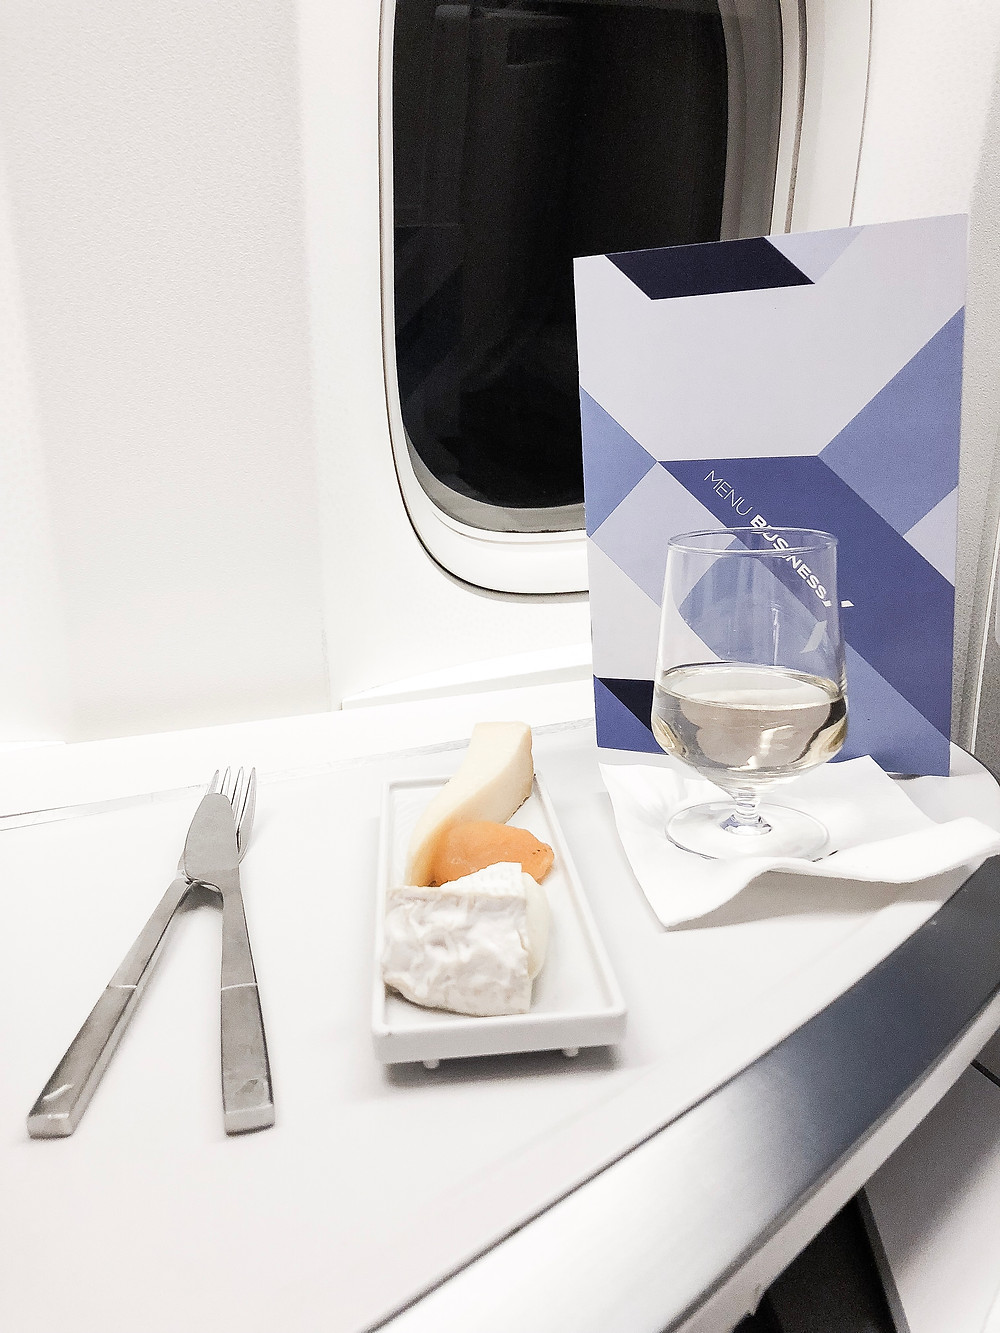 Air France Business Class, The Cheese Platter